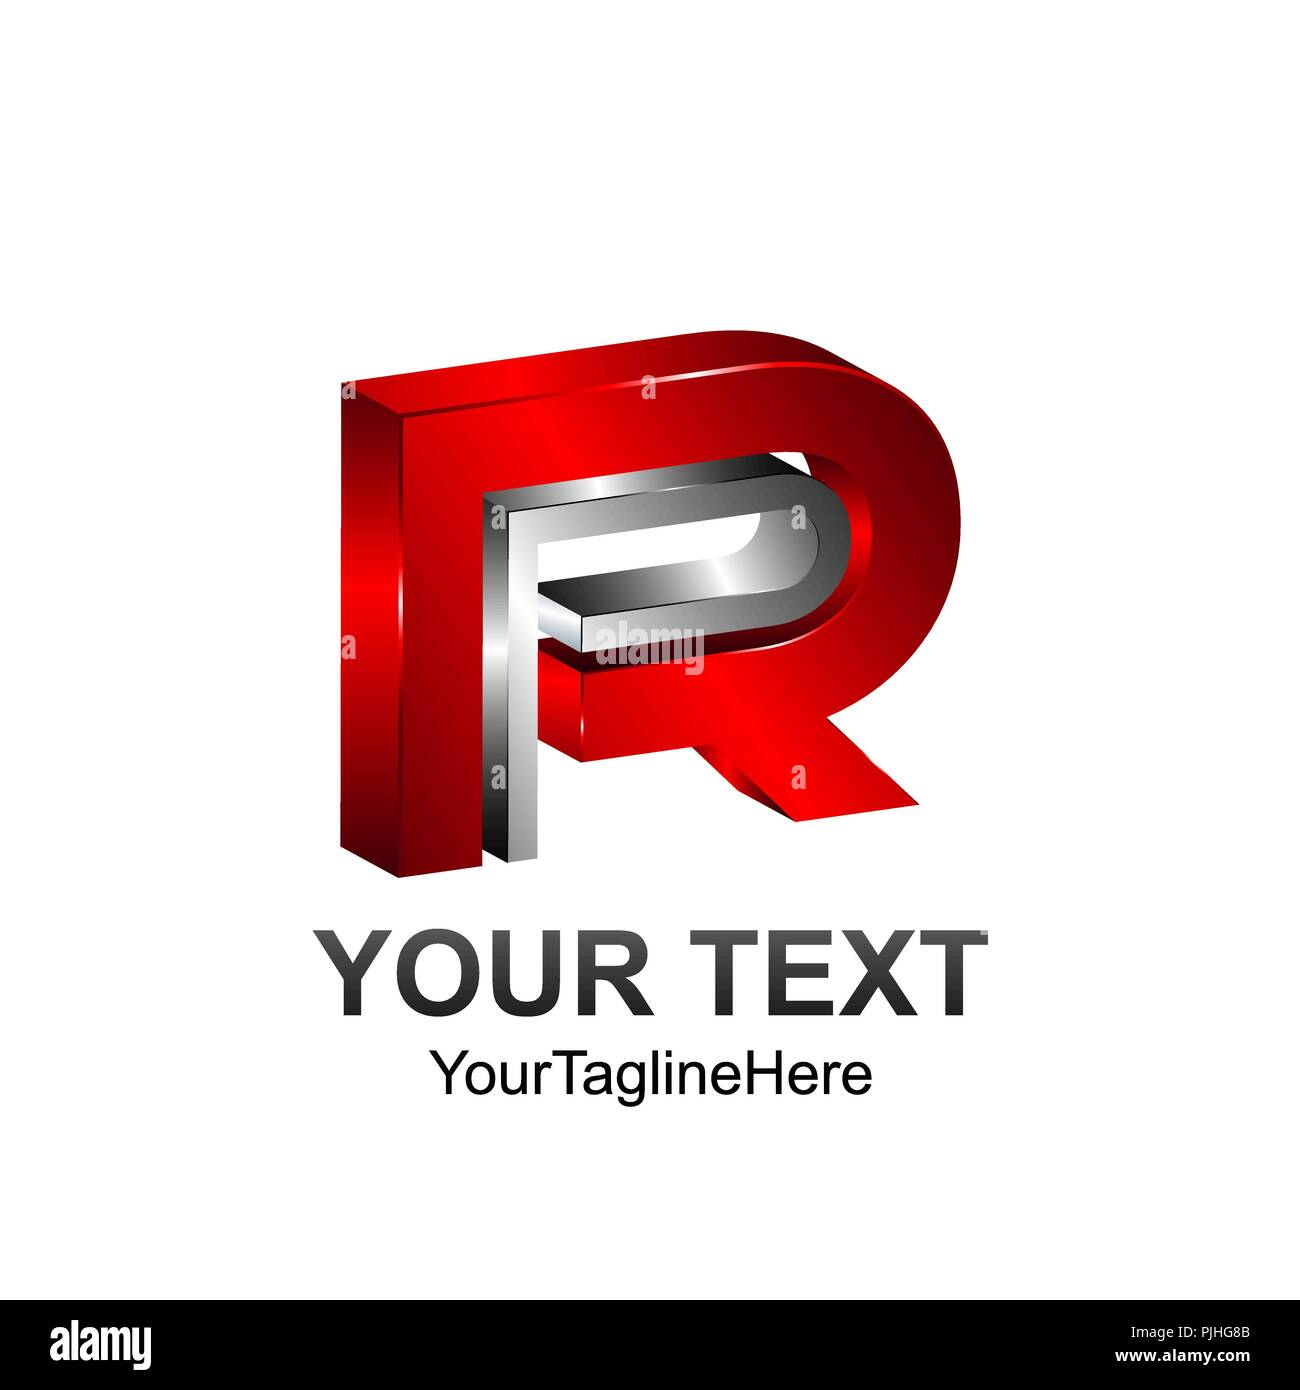 rp logo high resolution stock photography and images alamy https www alamy com 3d letter pr or rp initial alphabet logo design template element image217974187 html